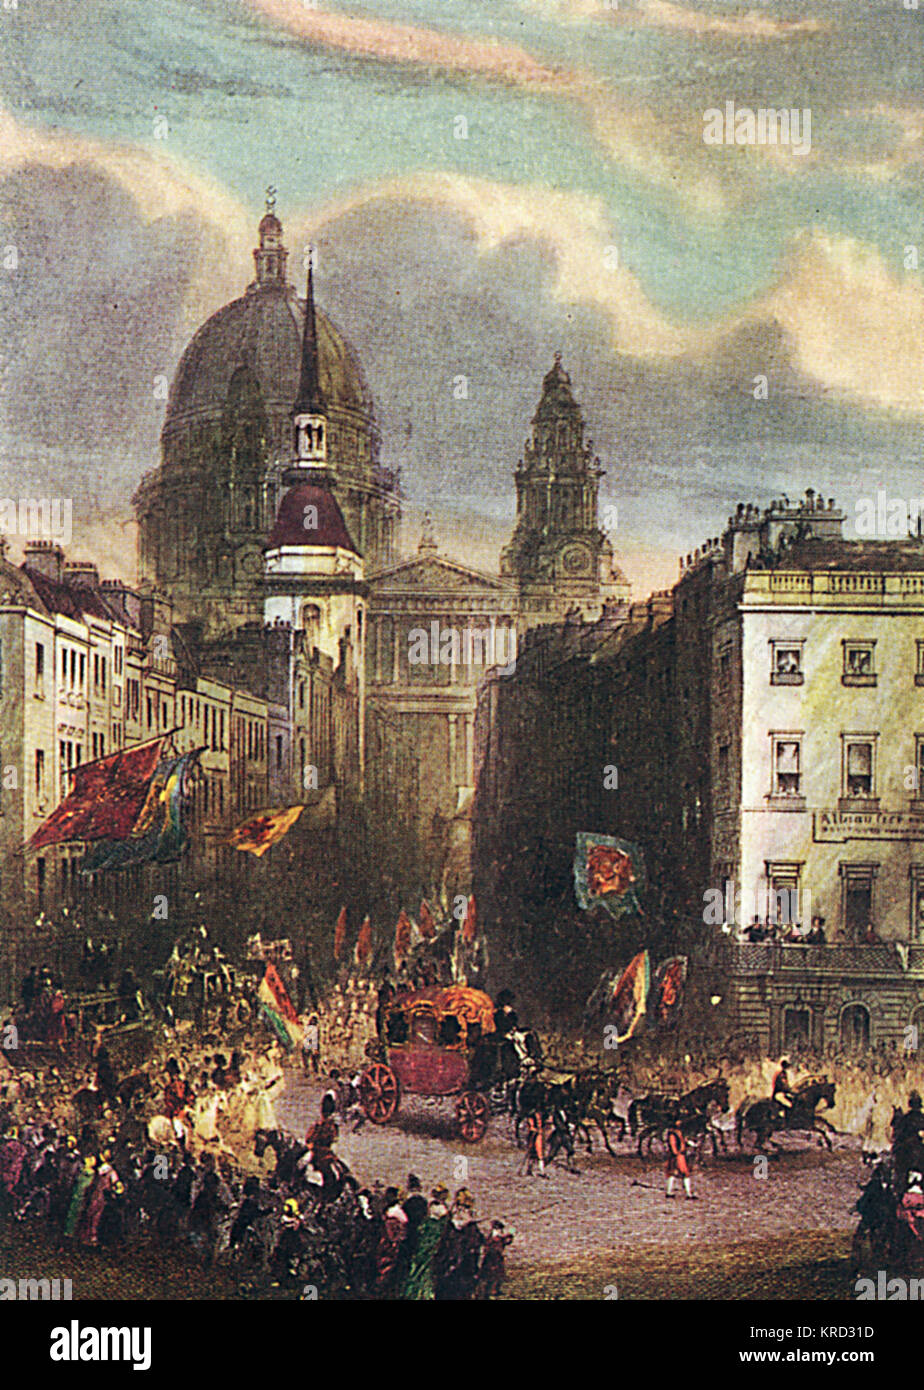 A royal procession down Fleet Street towards Ludgate Circus with the magnificence of St. Paul's Cathedral towering - Stock Image